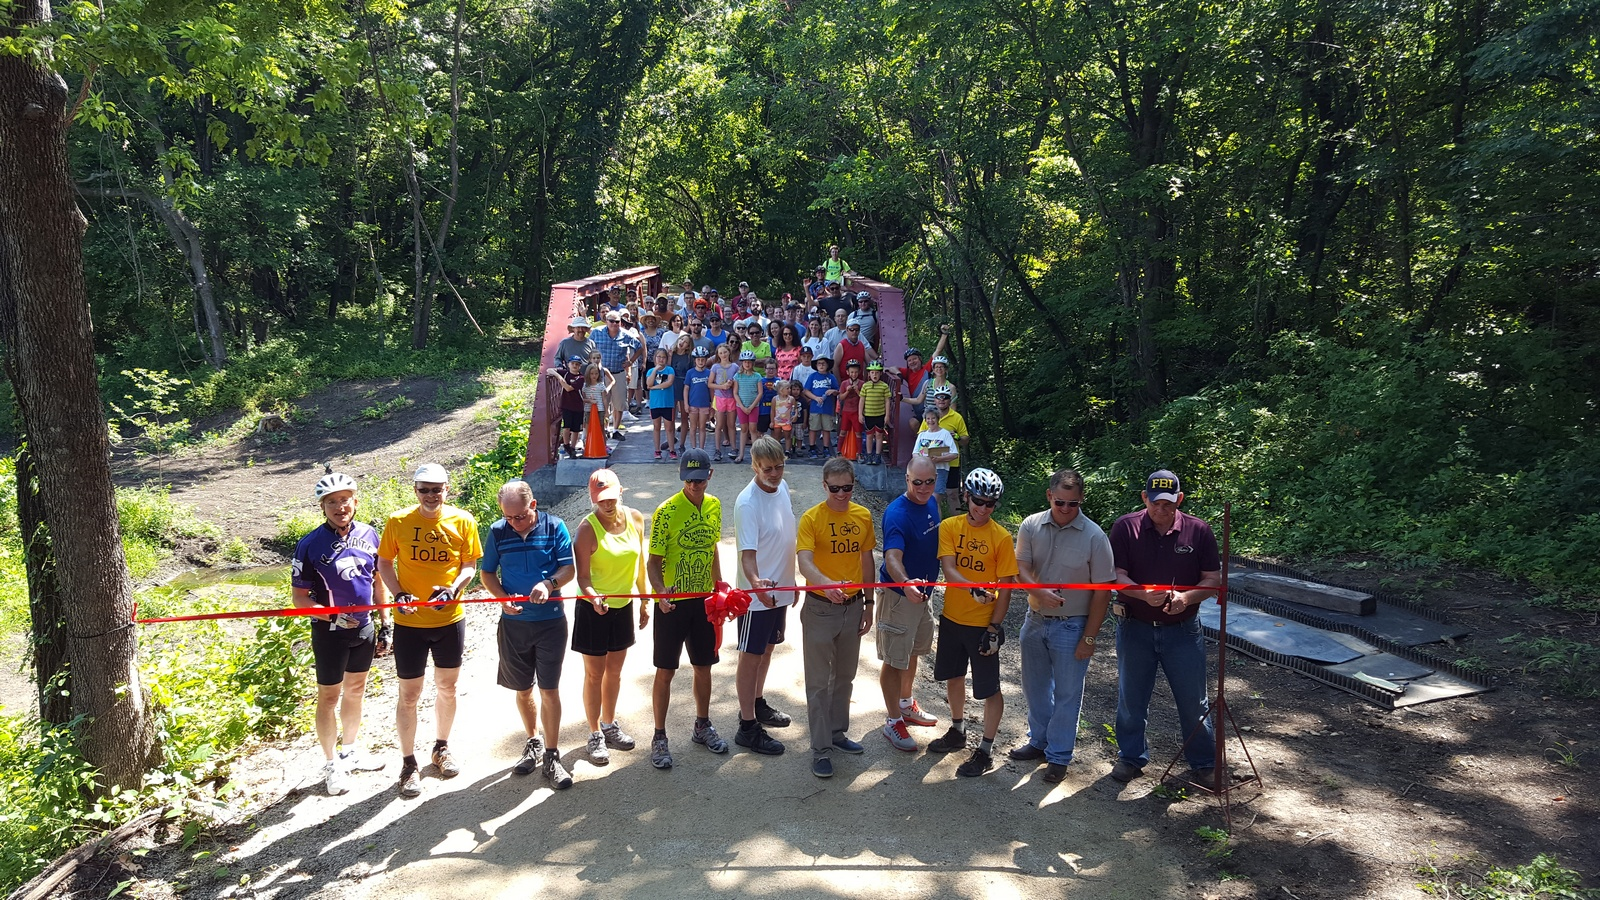 Ribbon cutting ceremony at the Sinclair-Hegwald Bridge.